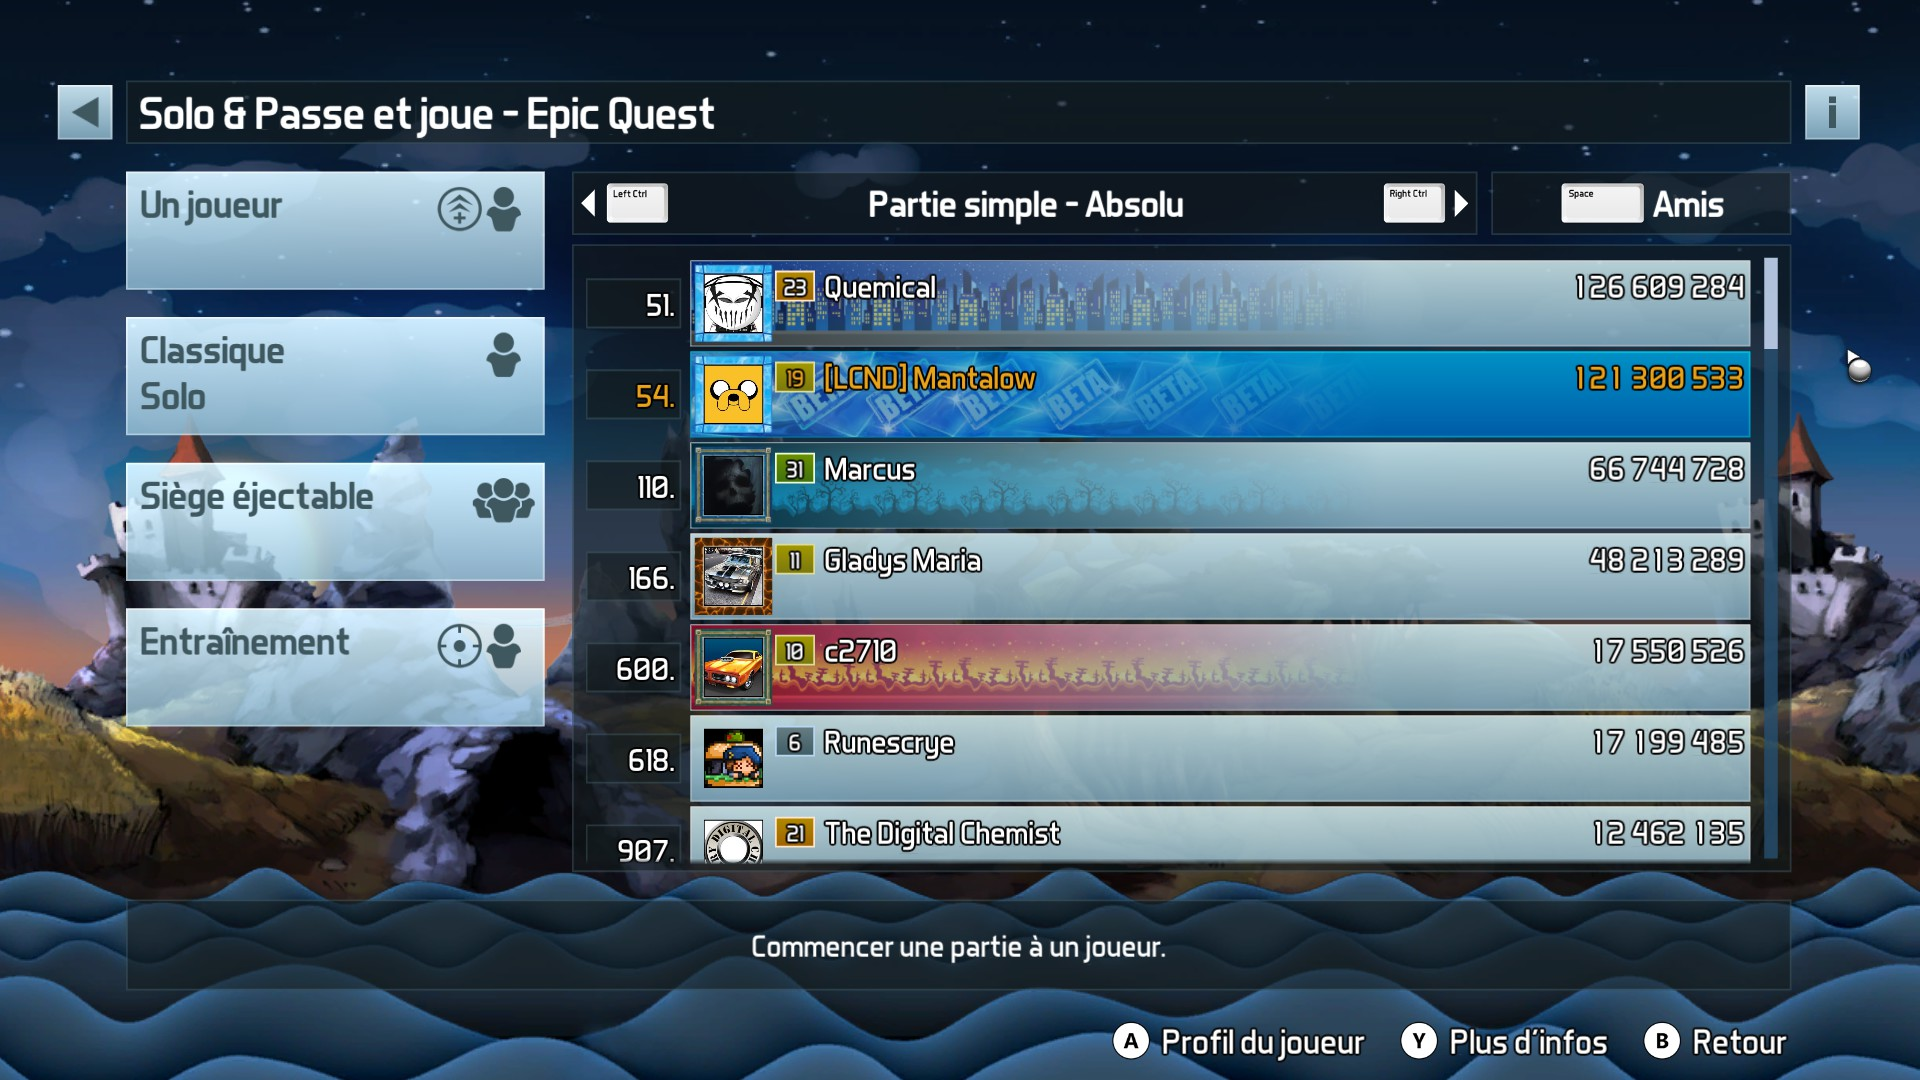 Mantalow: Pinball FX3: Epic Quest (PC) 121,300,533 points on 2017-10-03 03:58:22